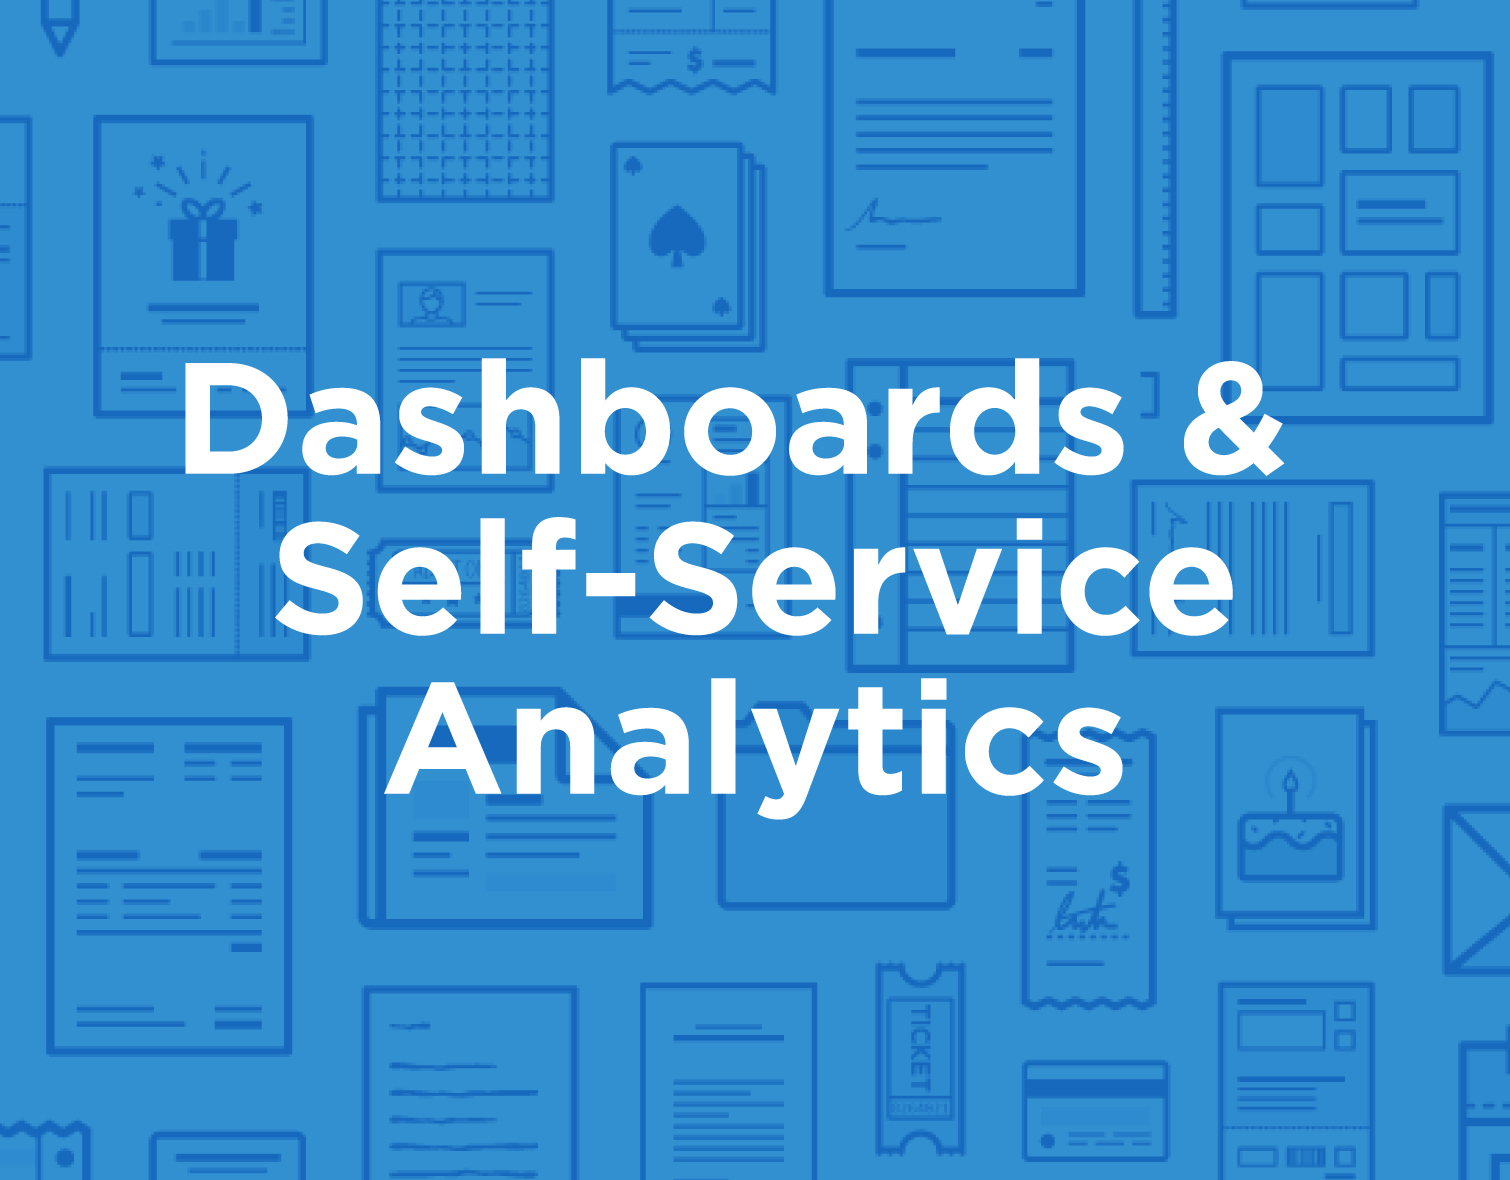 icon_Dashboards_&_Self-Serivce_Analytics.jpg